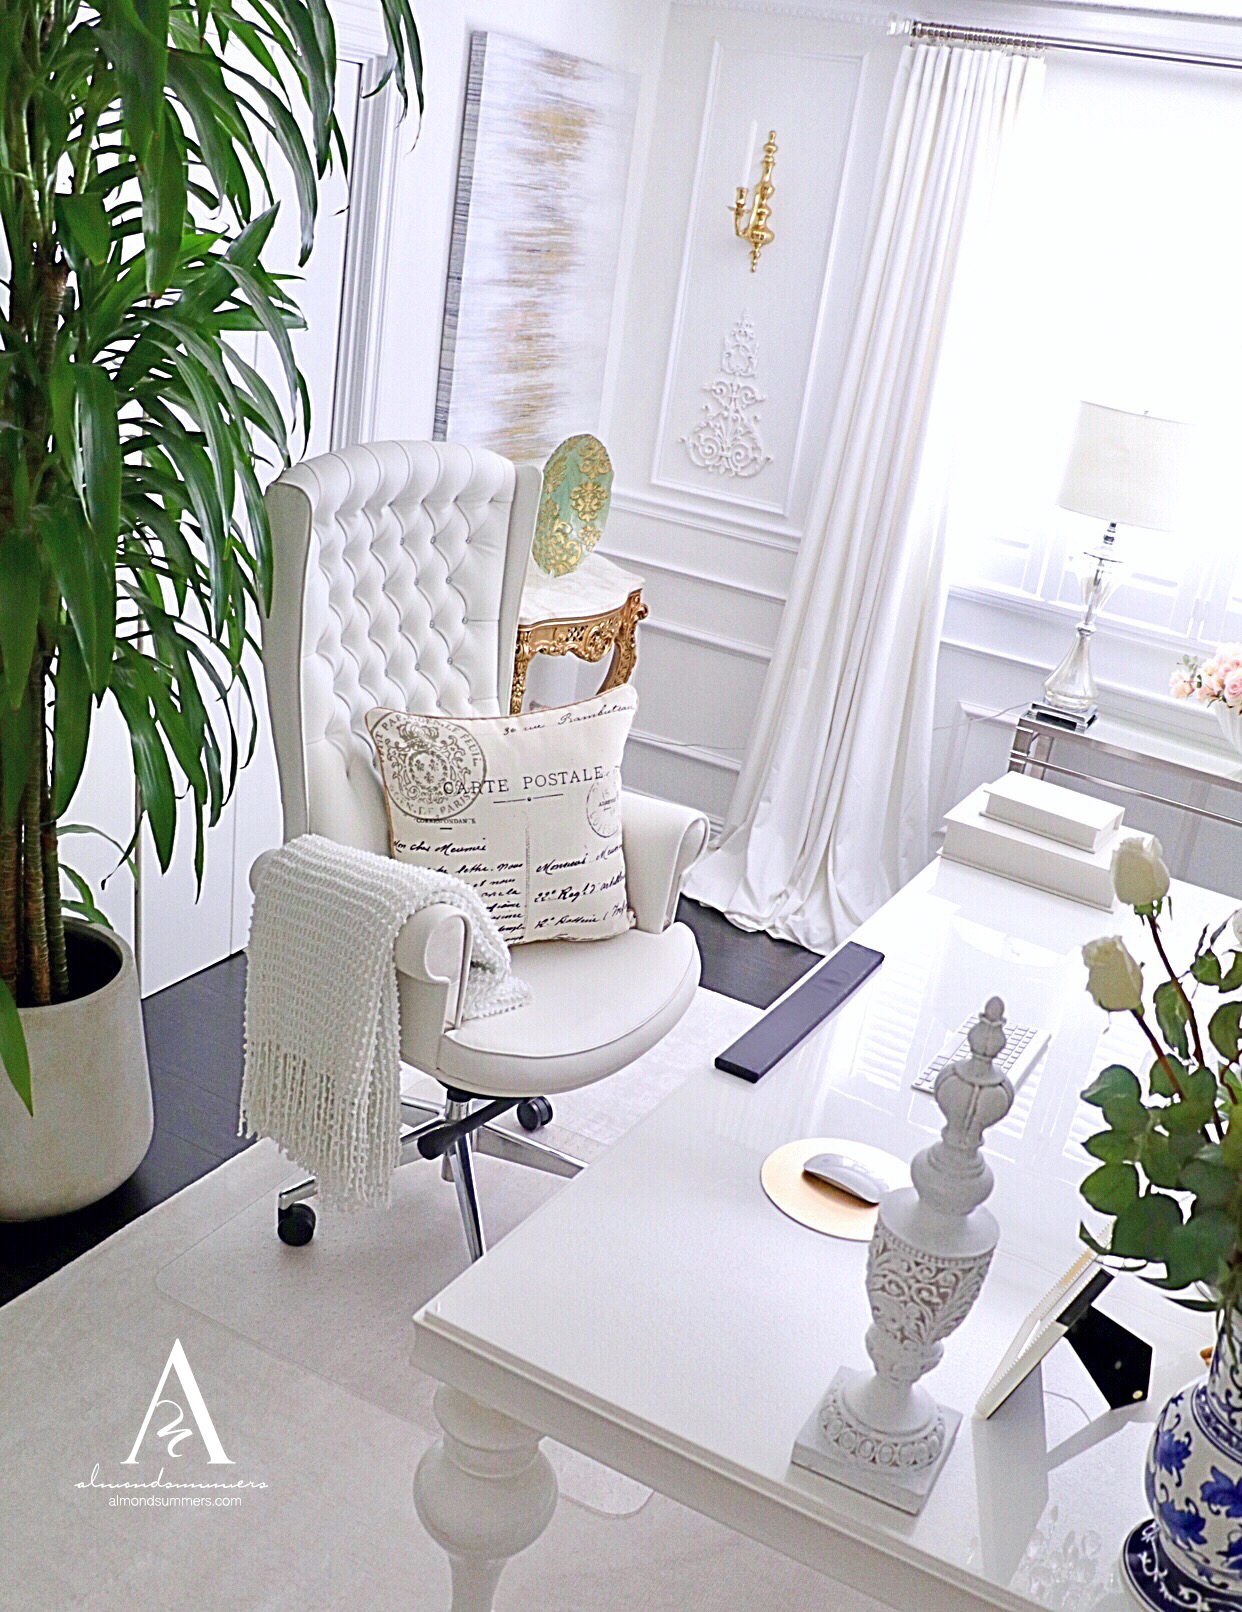 French Office Decor Ideas |Almond Summers Designs | Home Office | Office decor inspiration | French office Decorating Ideas | White Office Chairs